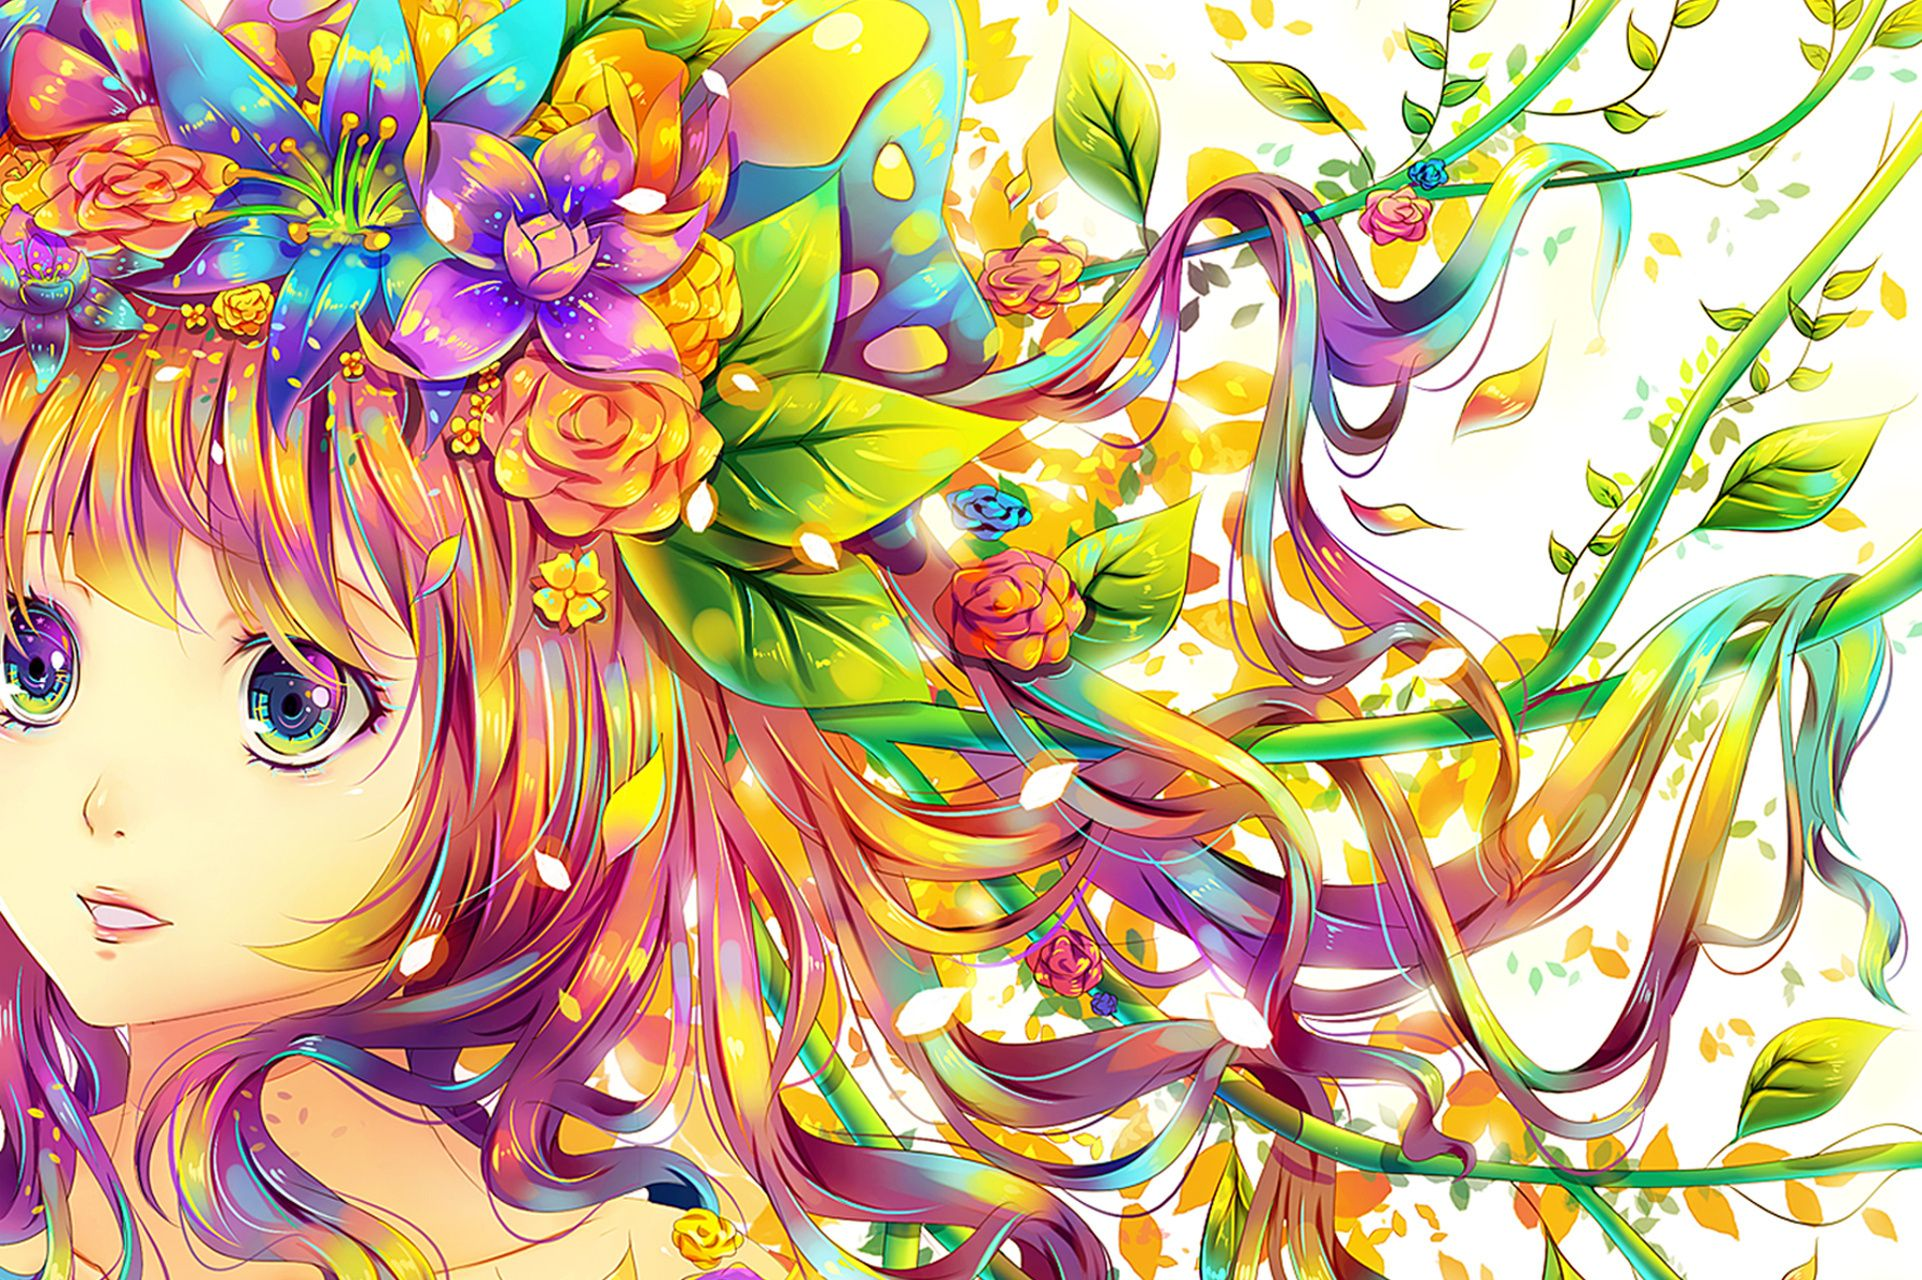 Rainbow Anime Wallpapers Top Free Rainbow Anime Backgrounds Wallpaperaccess